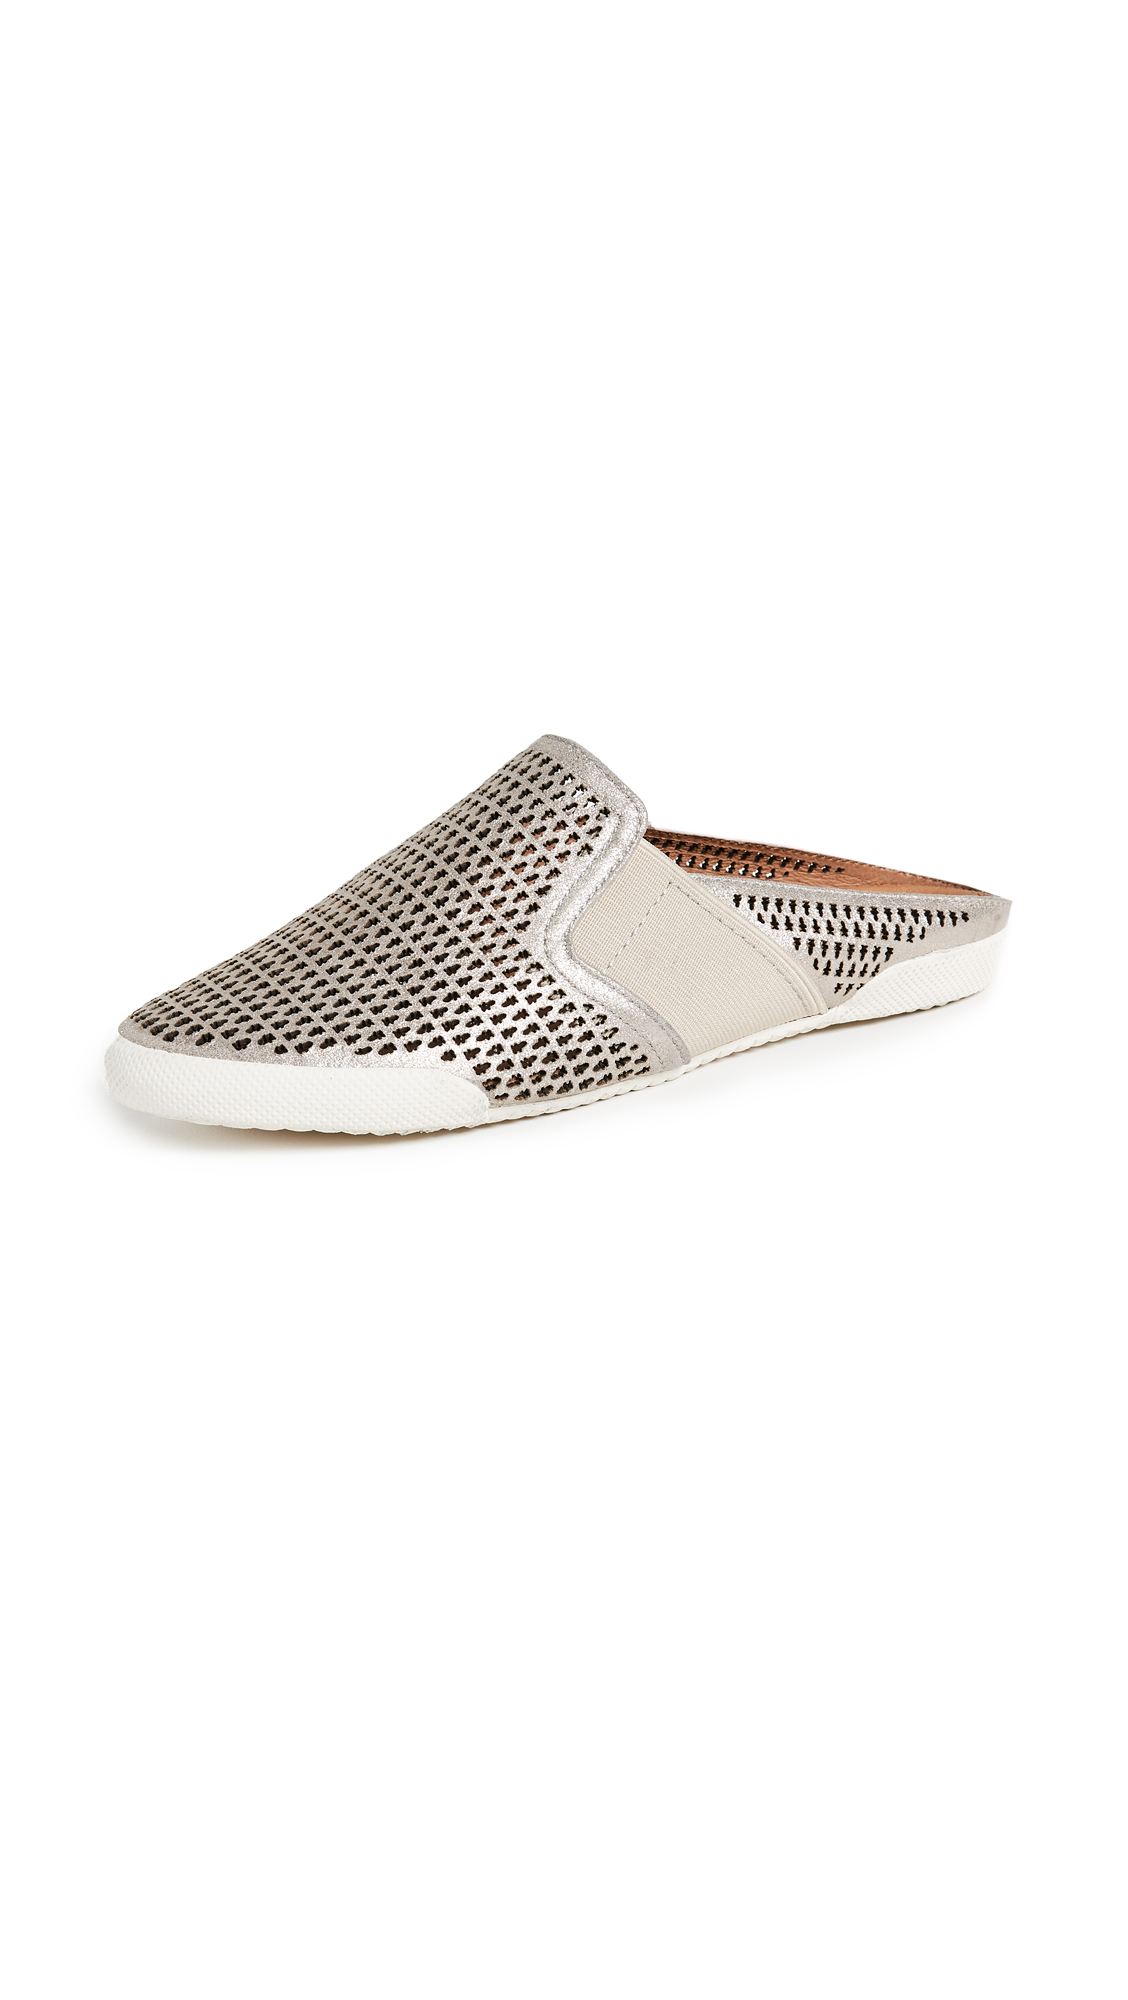 Frye Melanie Perforated Mules - Silver